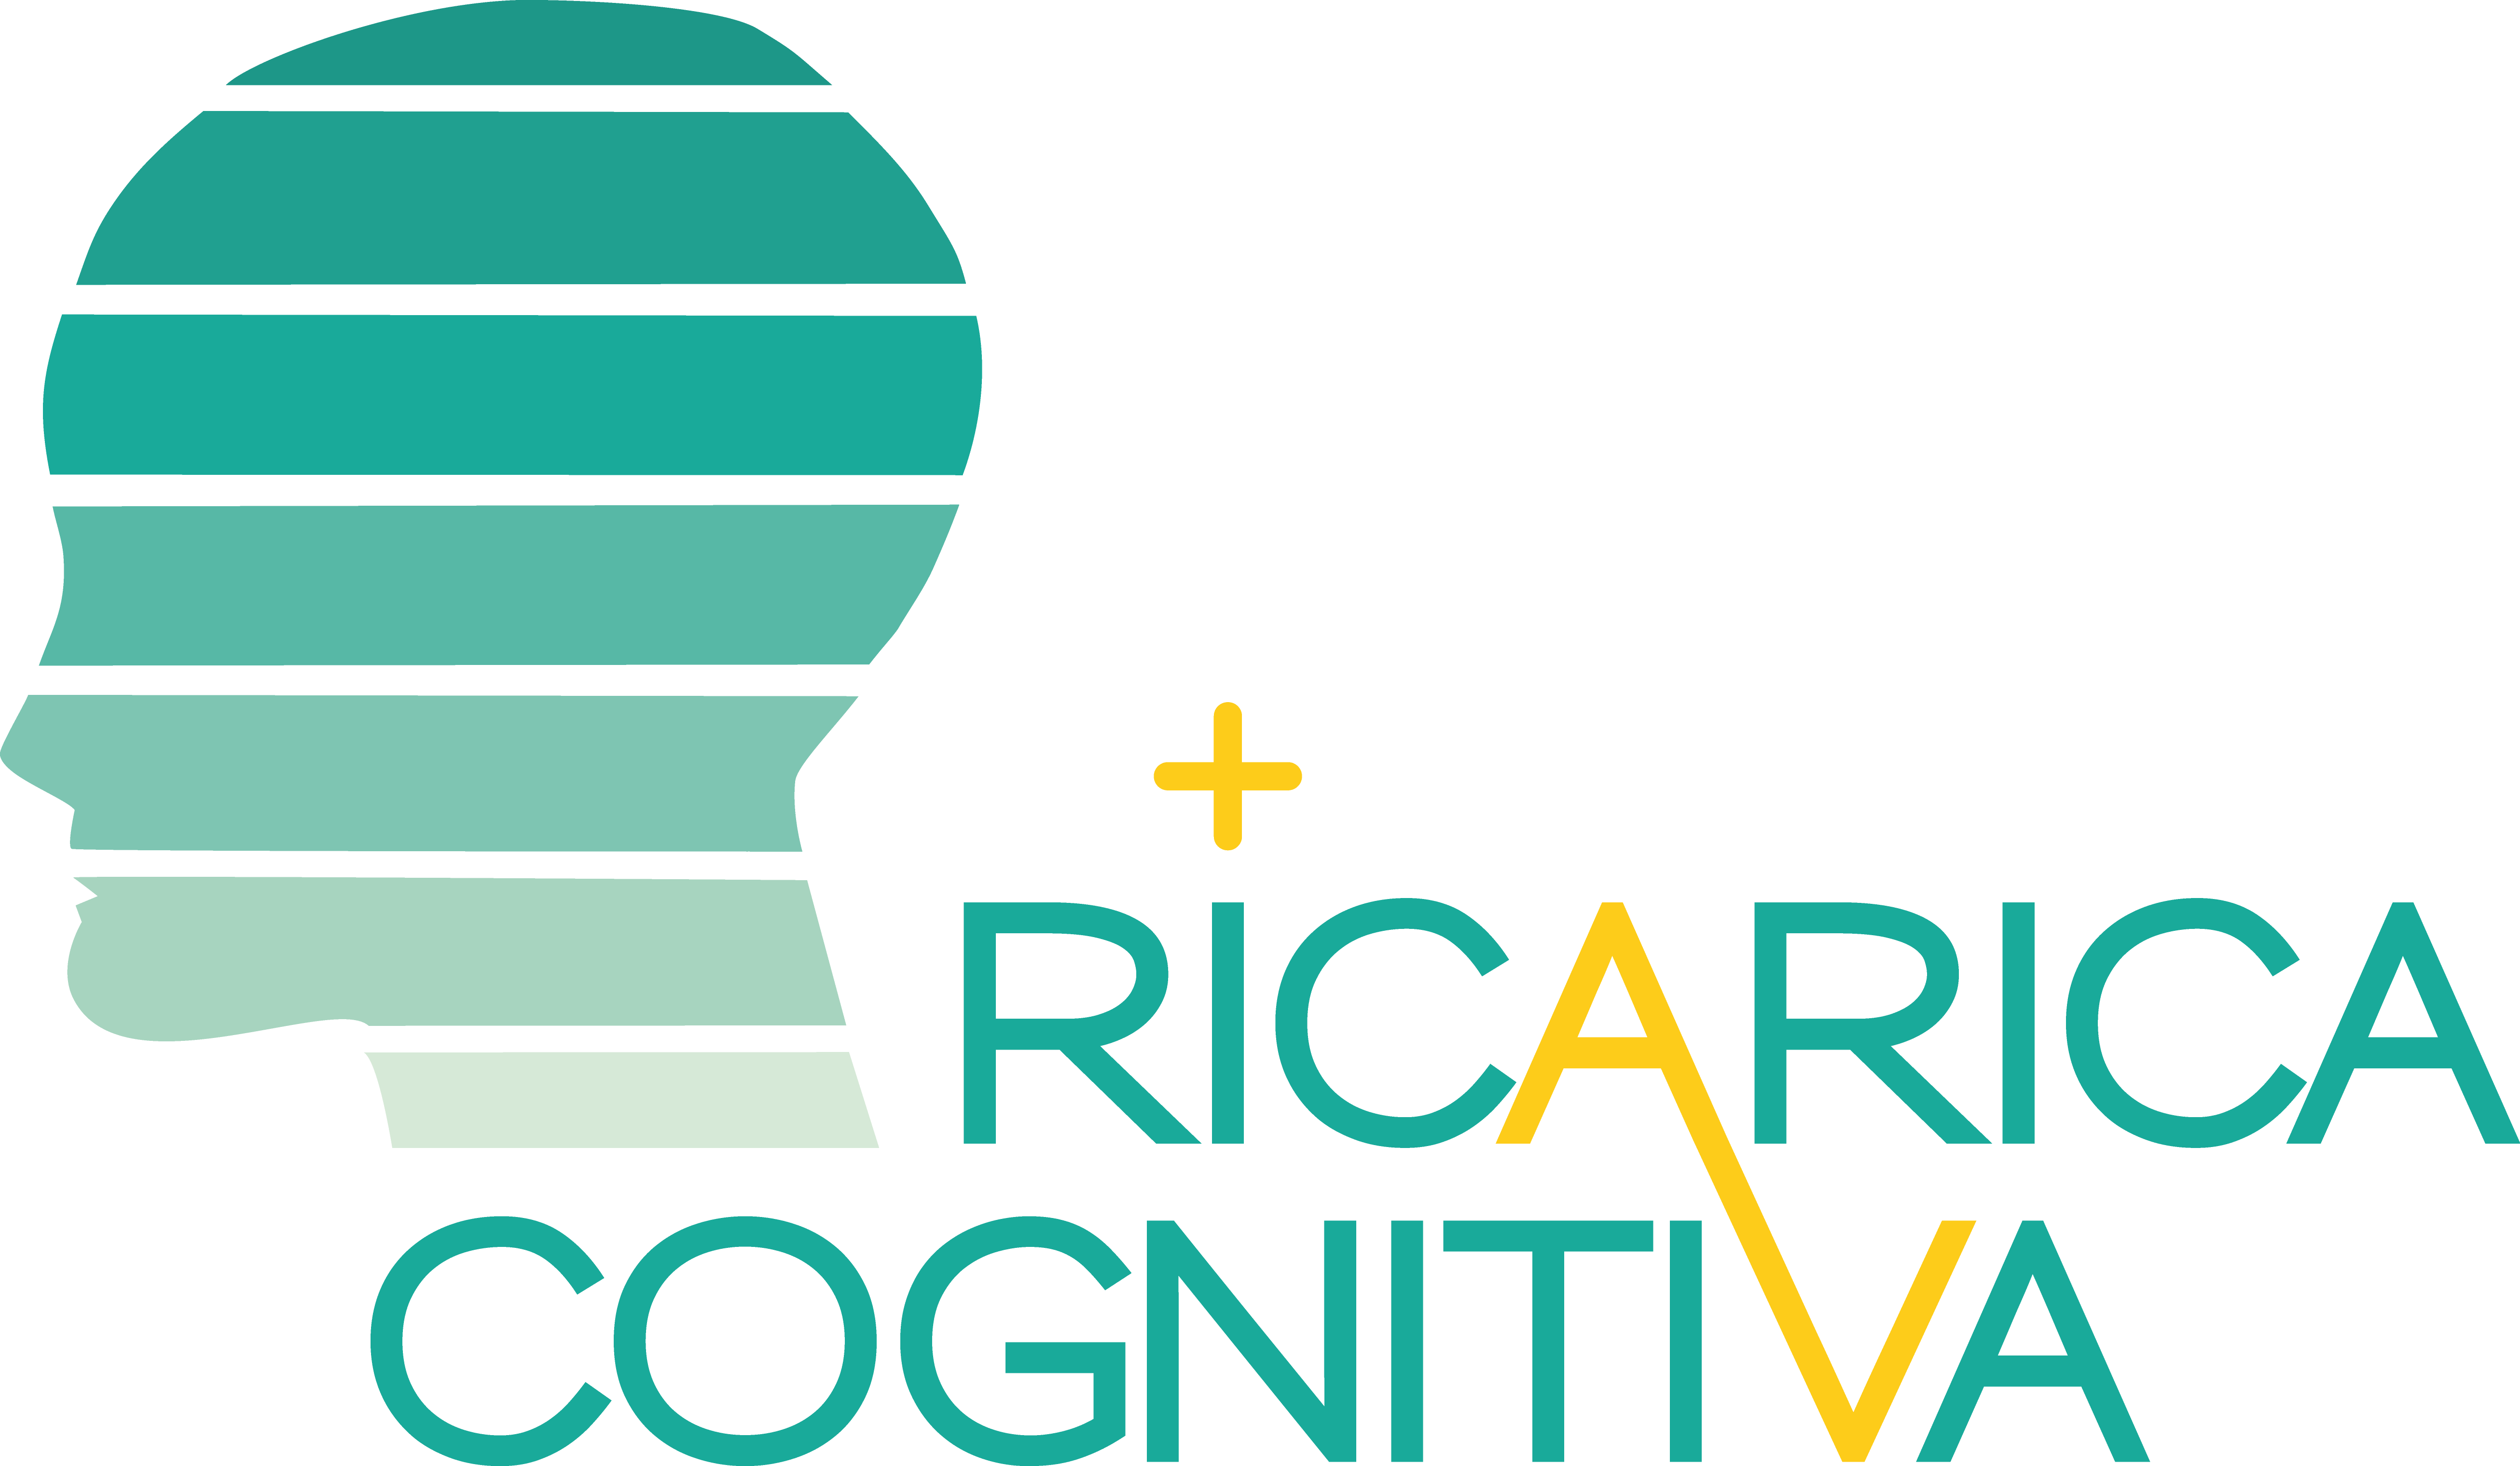 Ricarica_cognitiva.png